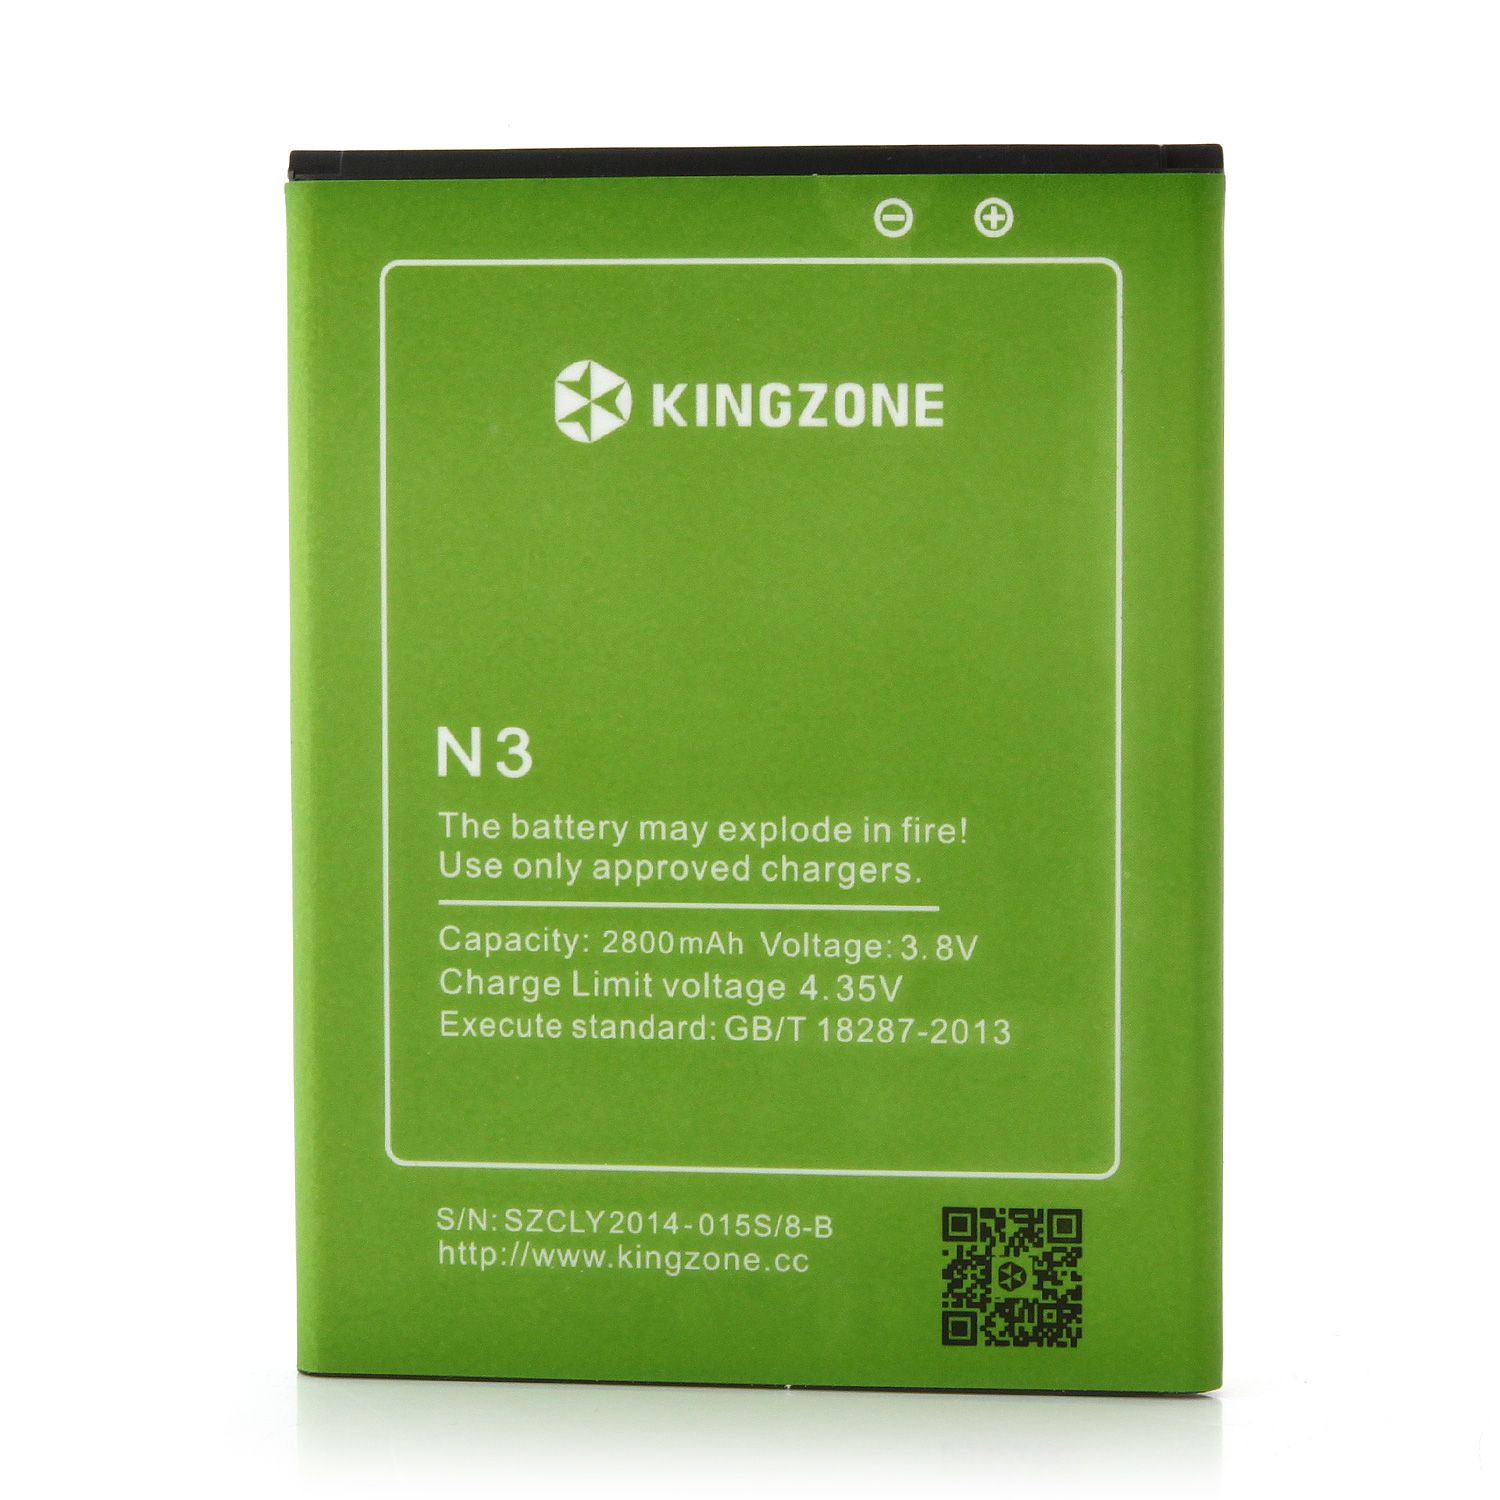 KINGZONE N3 4G LTE Android 4.4 Quad Core 5.0 Inch NFC Fingerprint Identification- Black